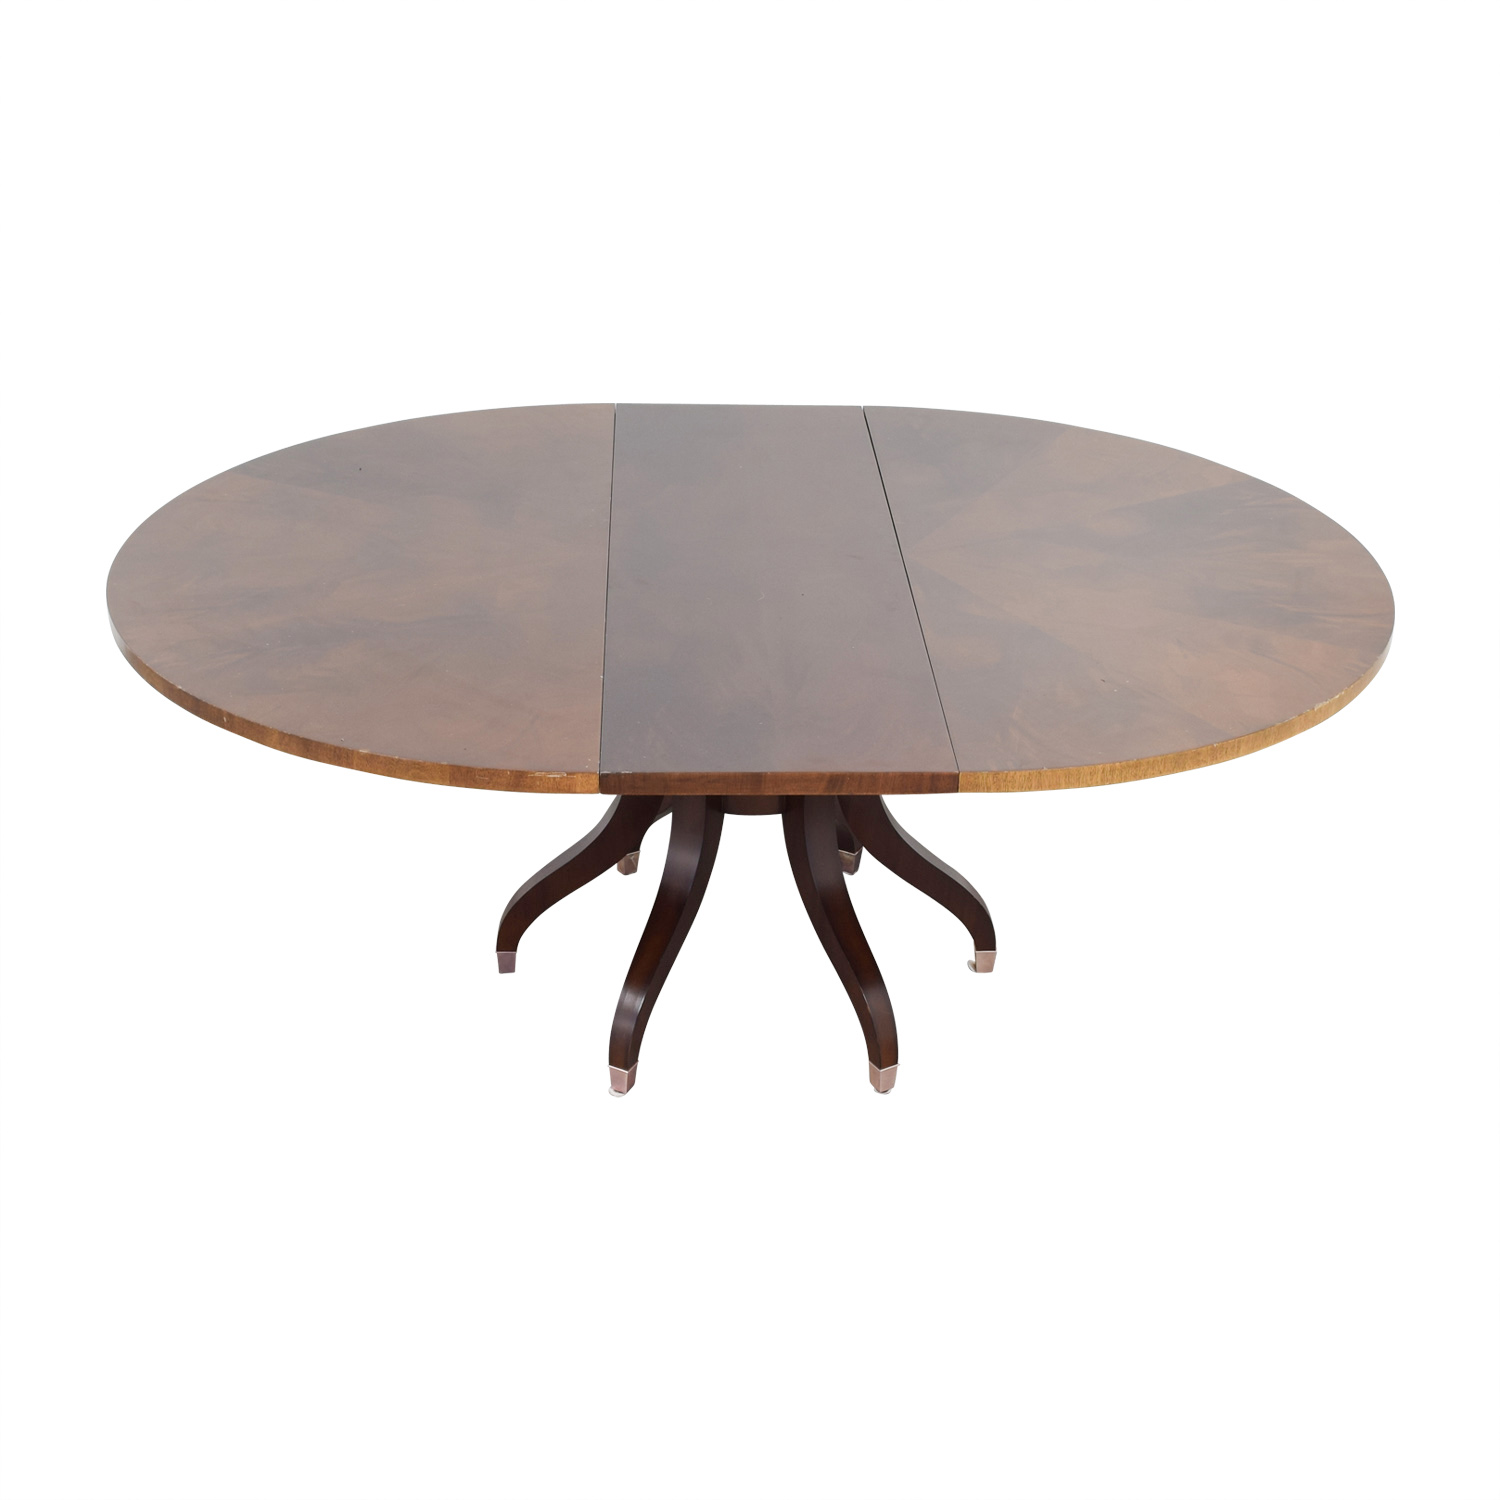 Used Ethan Allen Coffee Tables: Ethan Allen Ethan Allen Ashcroft Dining Table